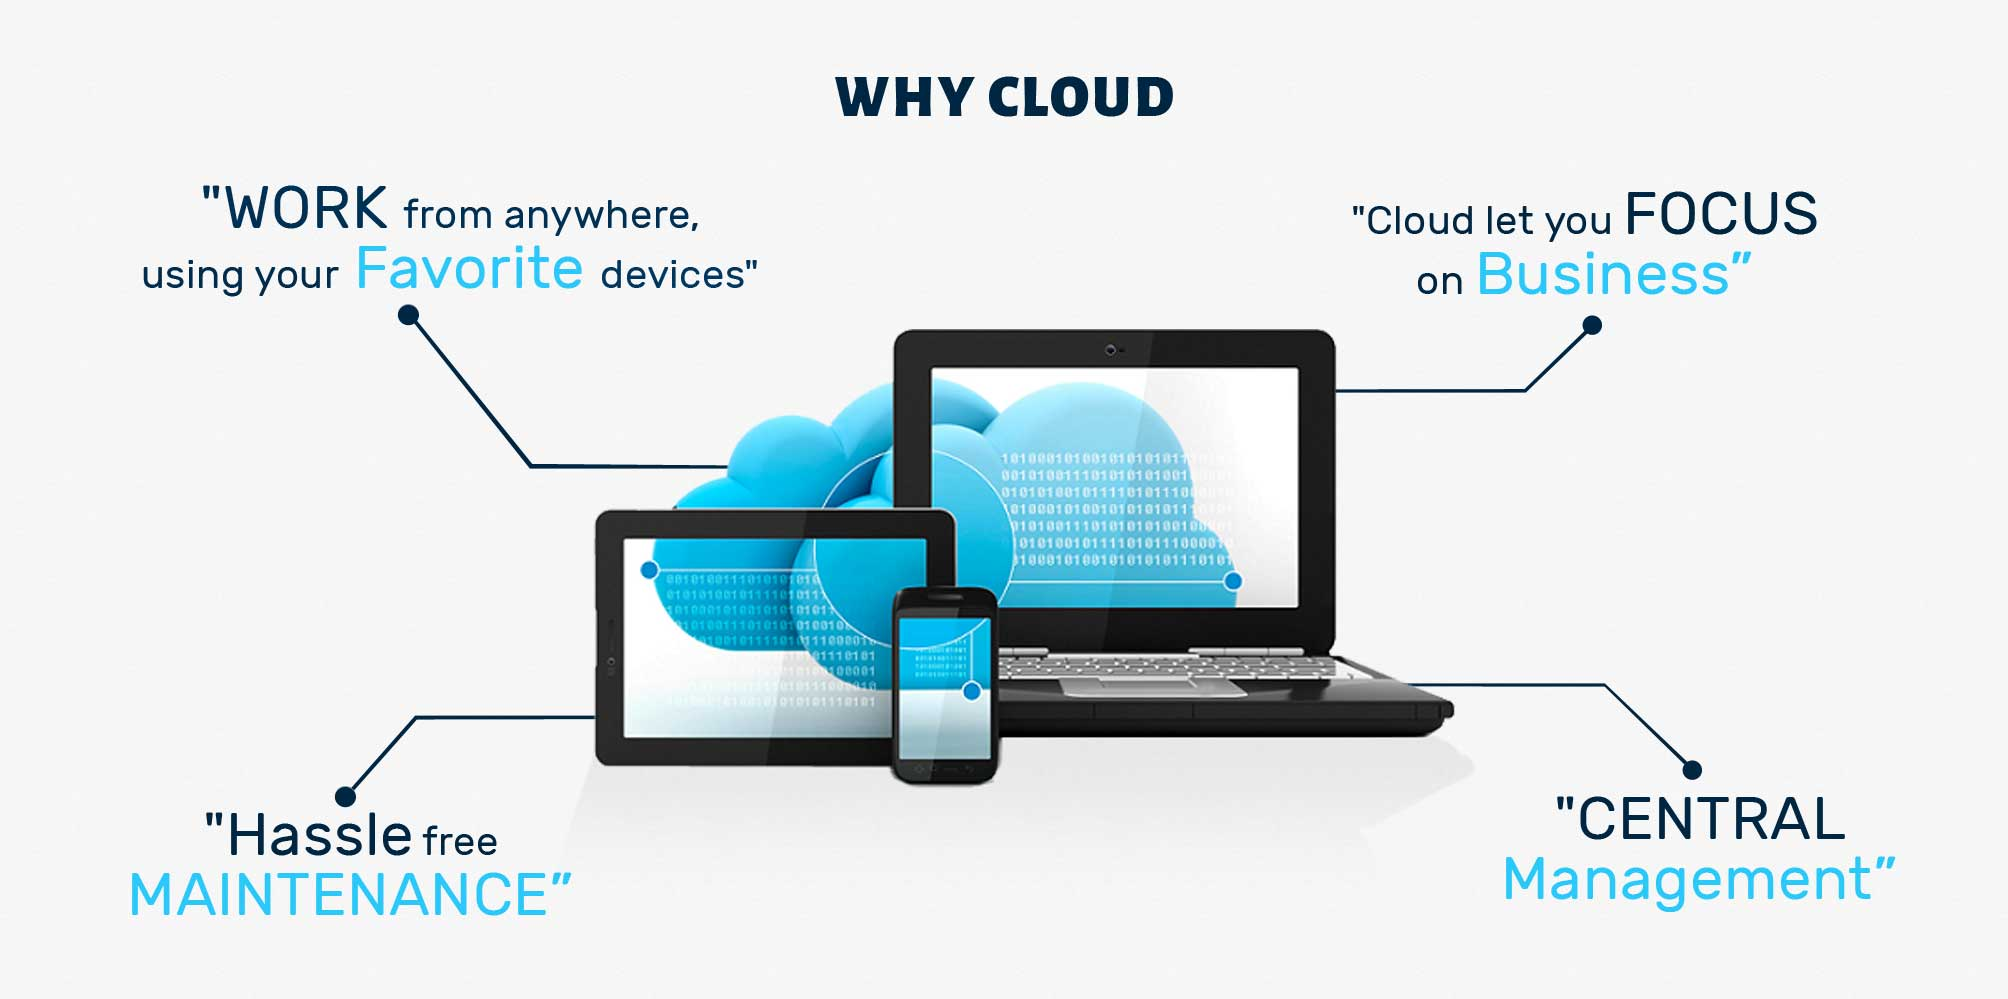 Why you should move to cloud technology